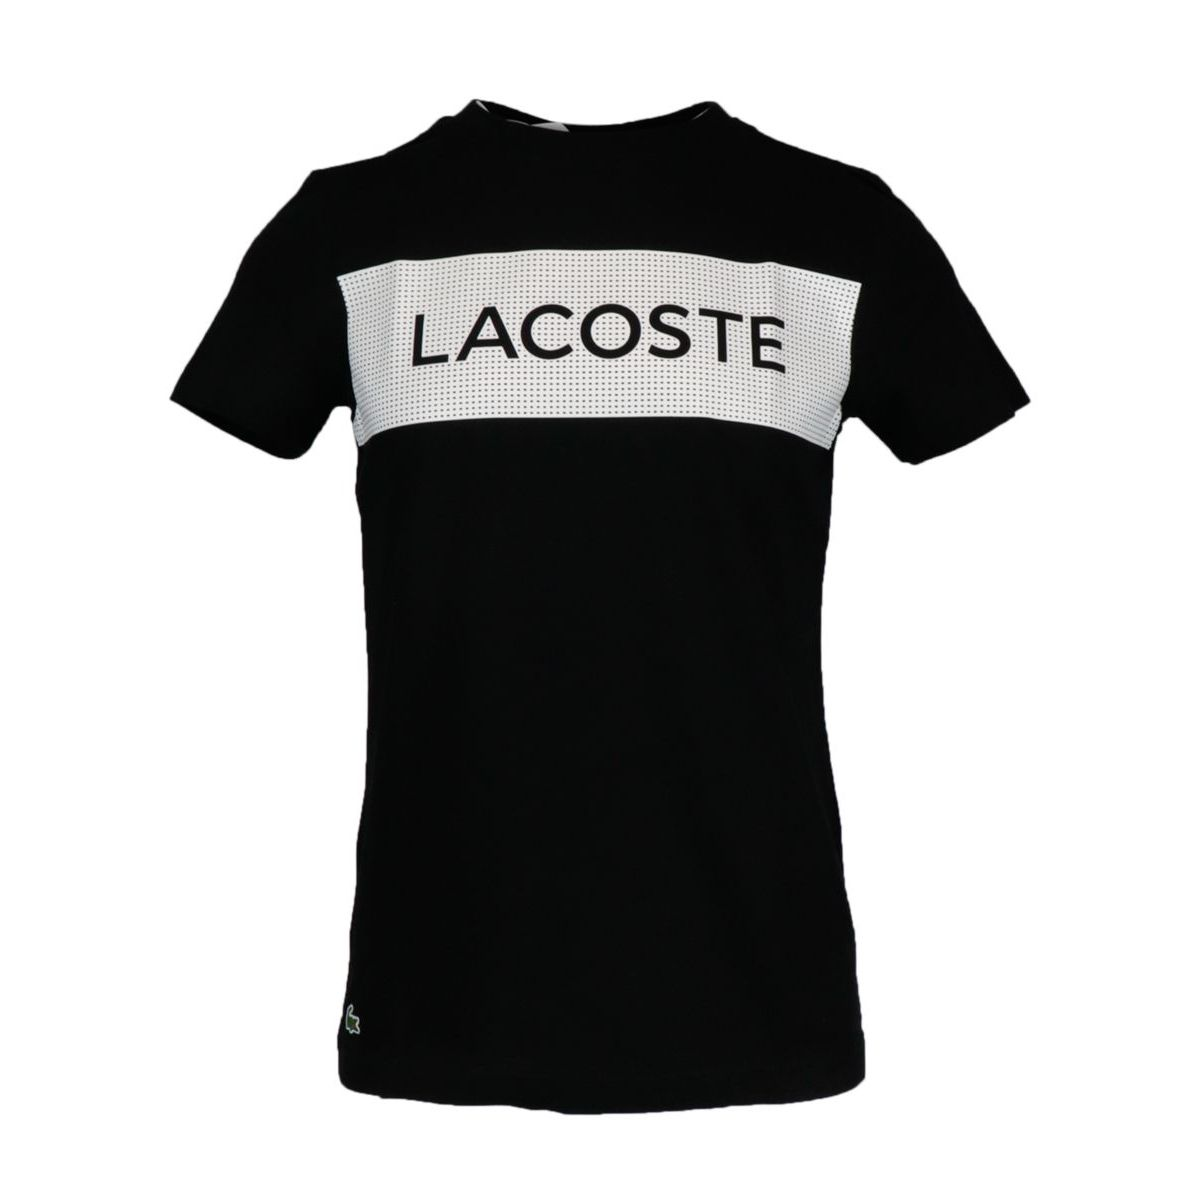 Short-sleeved T-shirt in cotton blend with contrasting logo print Black Lacoste